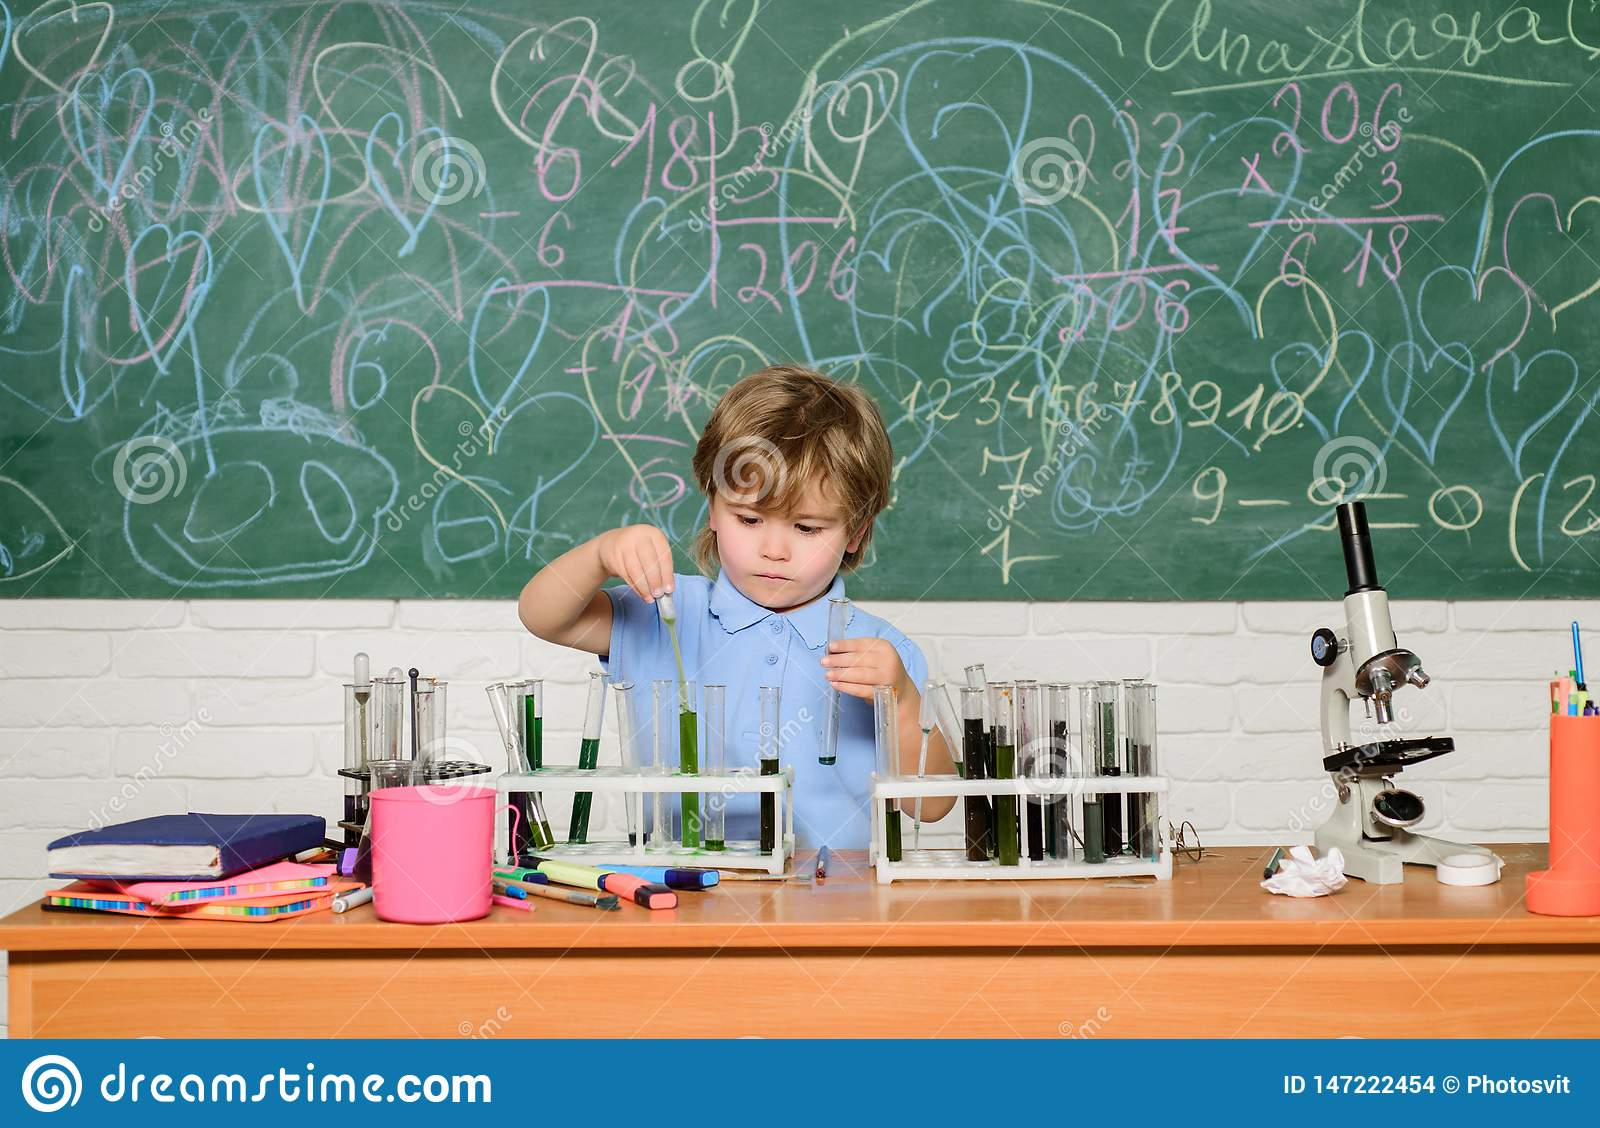 Chemistry laboratory. Practical knowledge concept. Study grants and scholarship. Wunderkind and early development. Smart